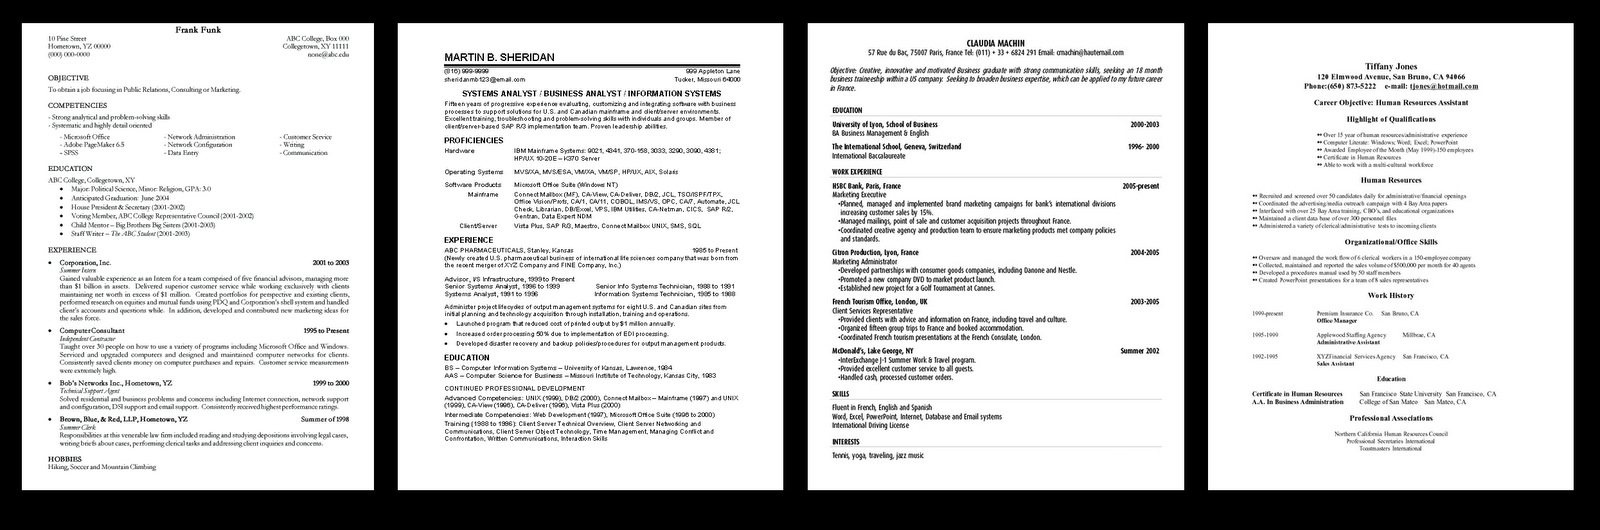 mister wilson s video production class although these resumes contain similar information styles do vary